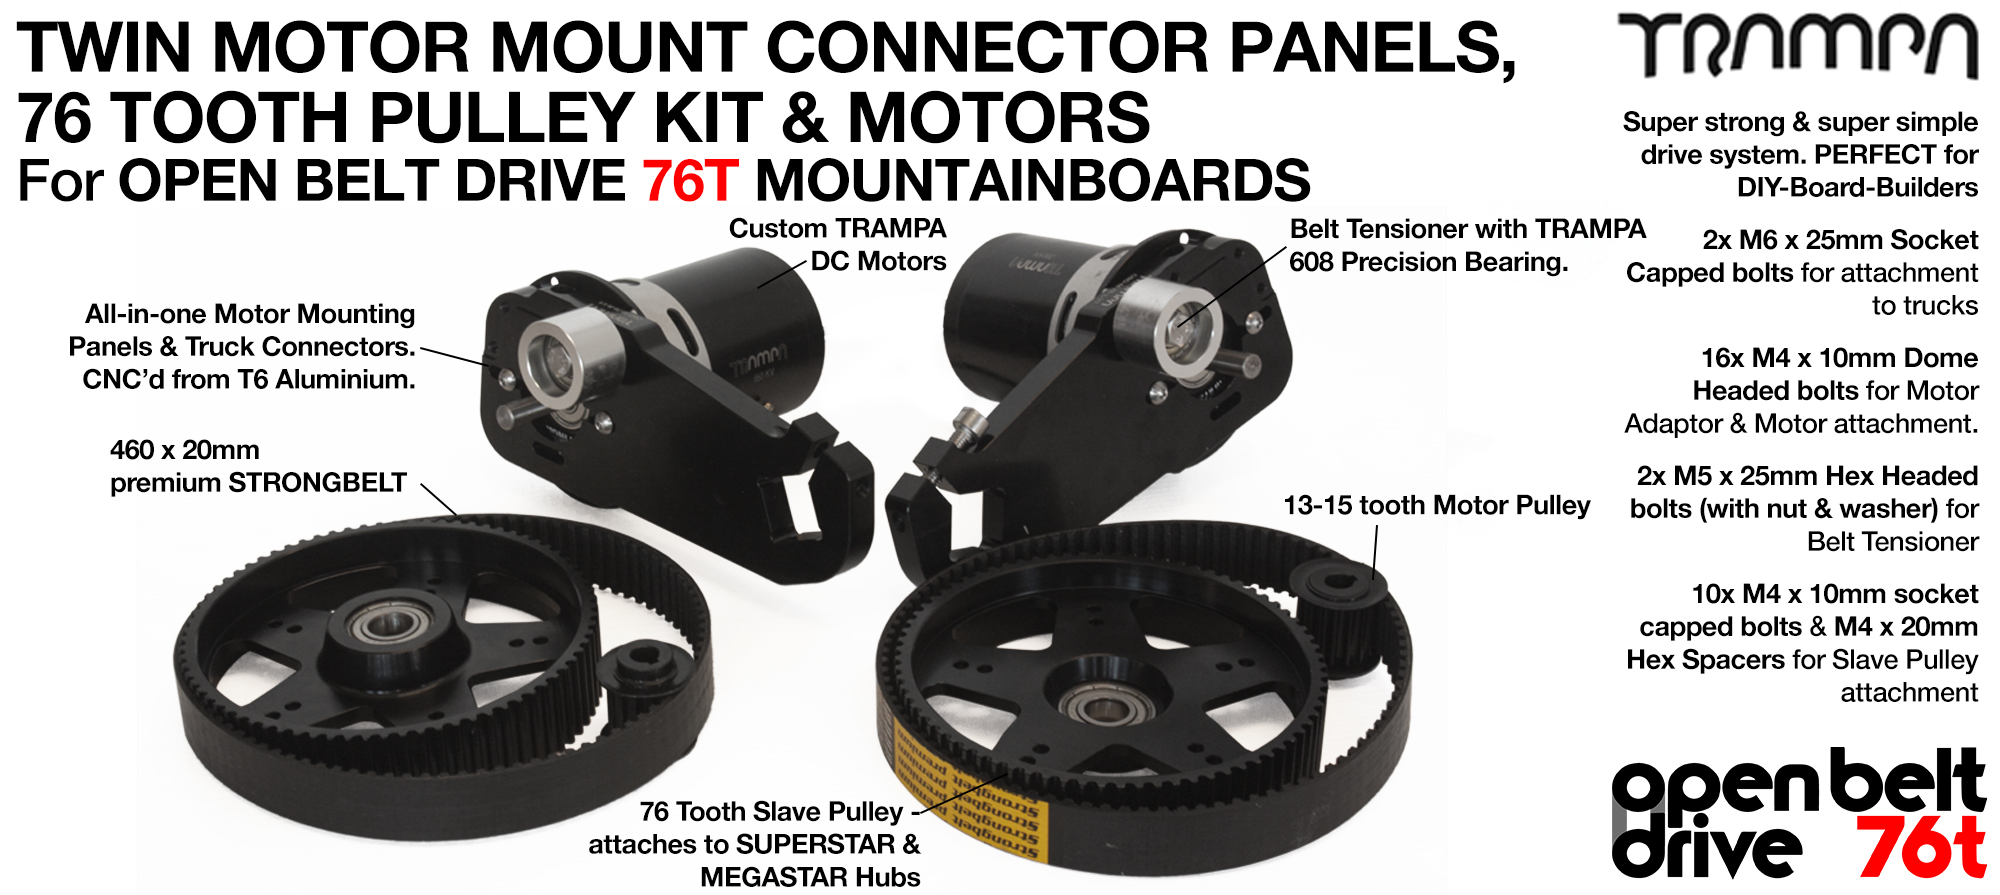 76T OBD Motor Mount & 76 tooth Pulley with MOTOR - TWIN